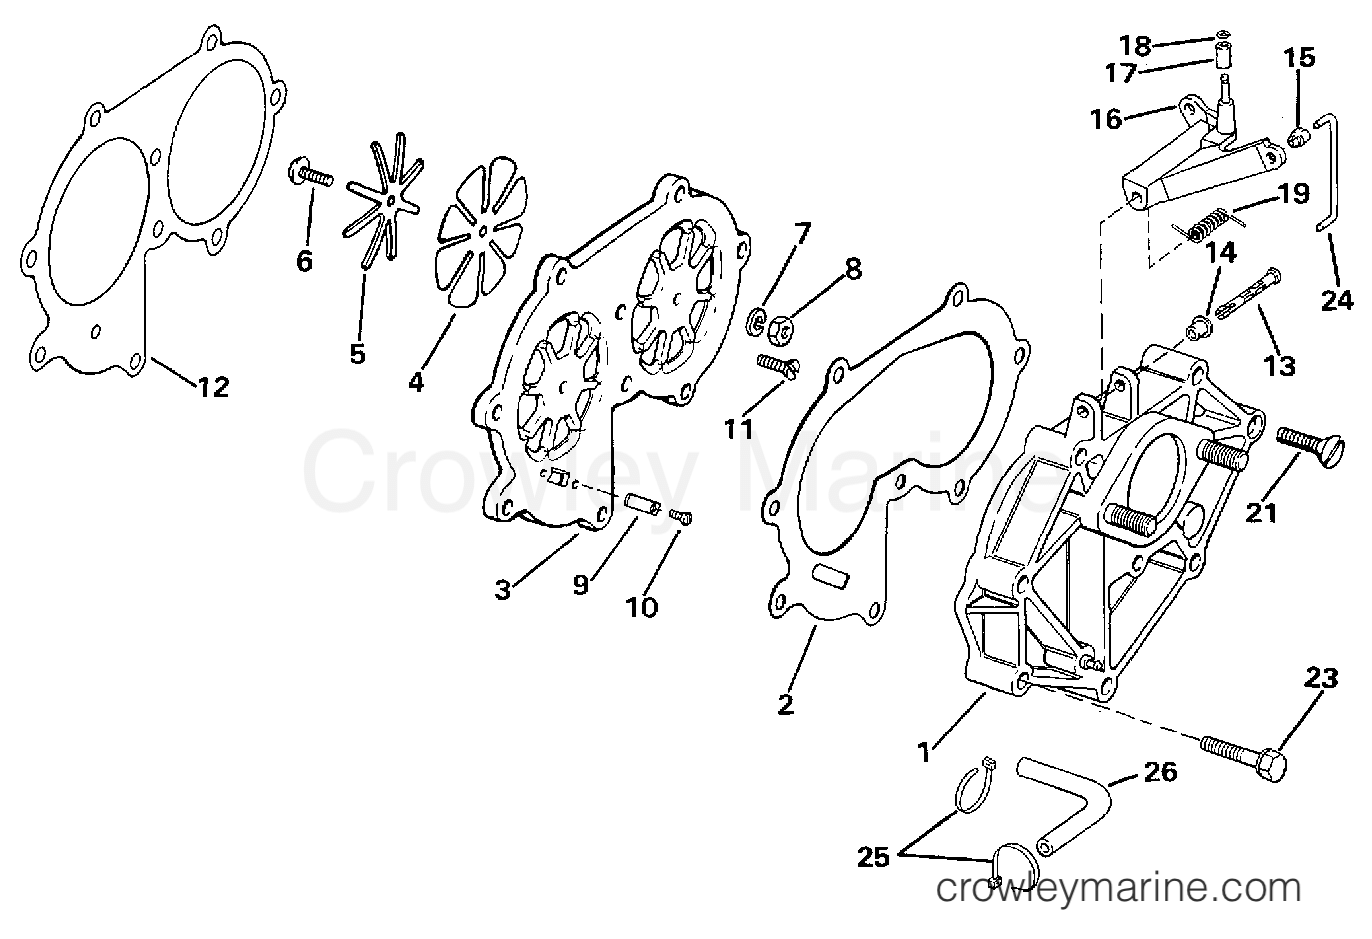 1997 Evinrude Outboards 25 - E25TEEUM - INTAKE MANIFOLD section